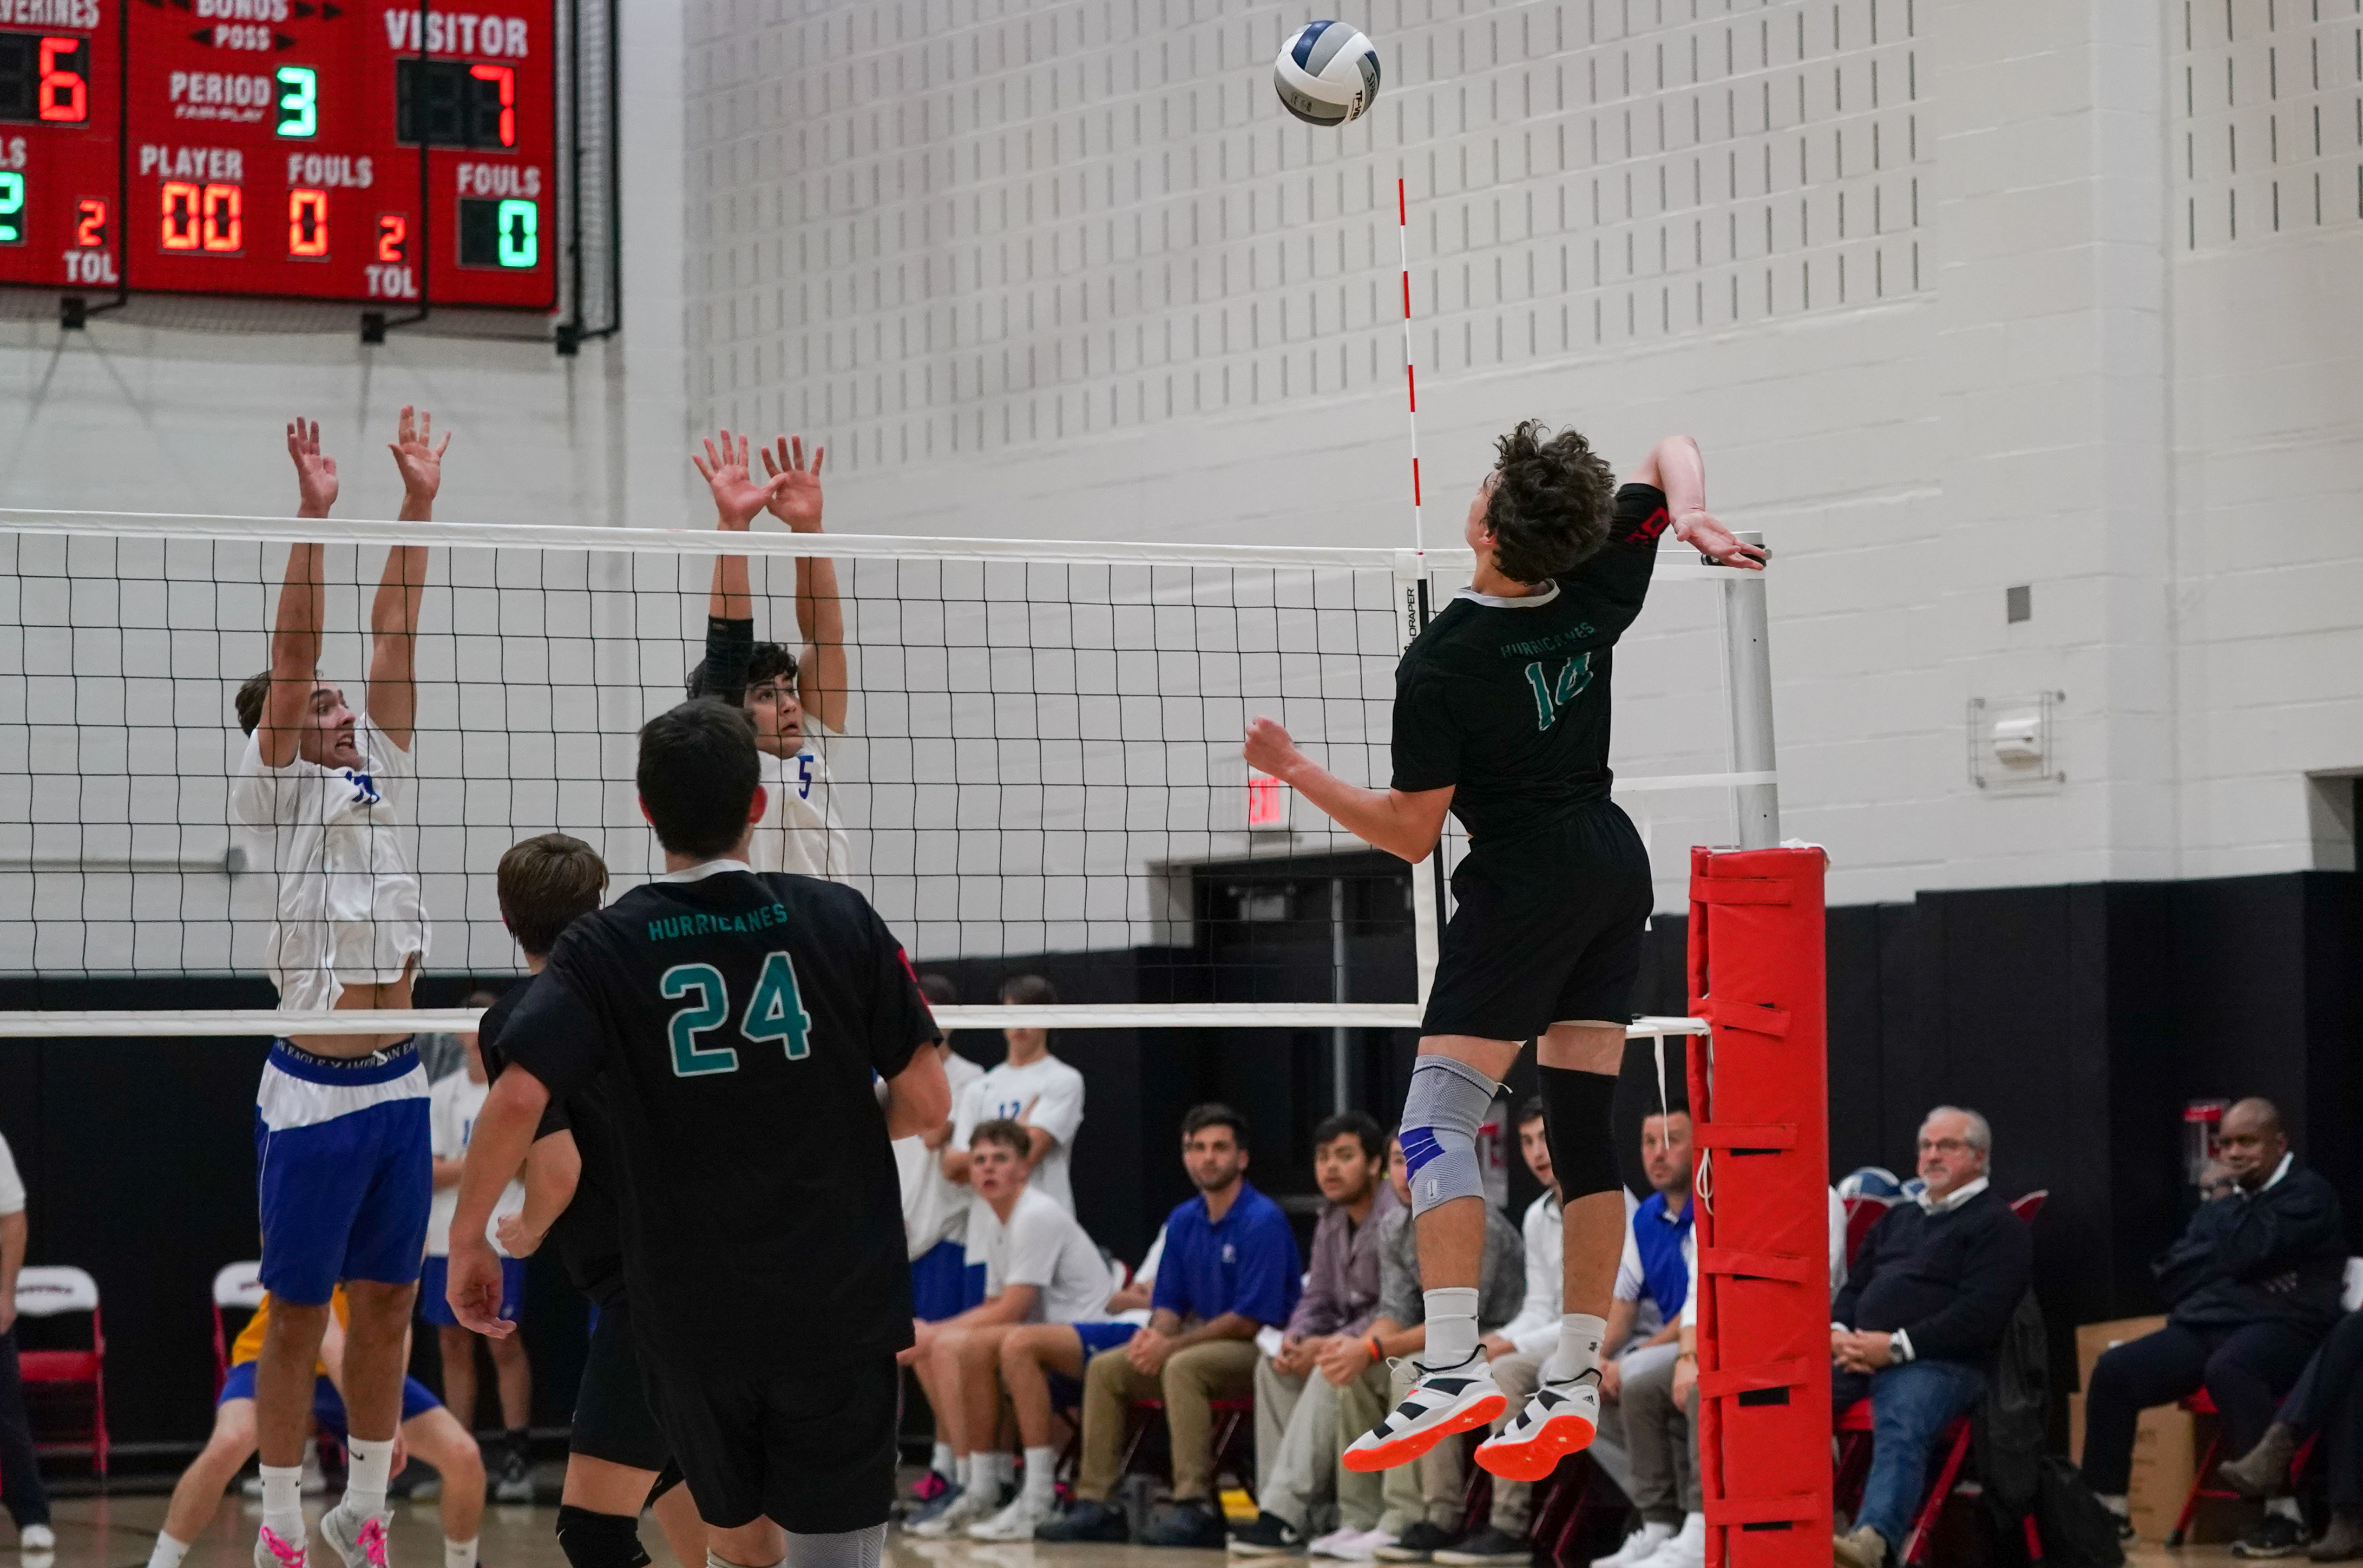 Westhampton Beach sophomore Daniel Haber tied for the team lead on Monday with 15 kills.